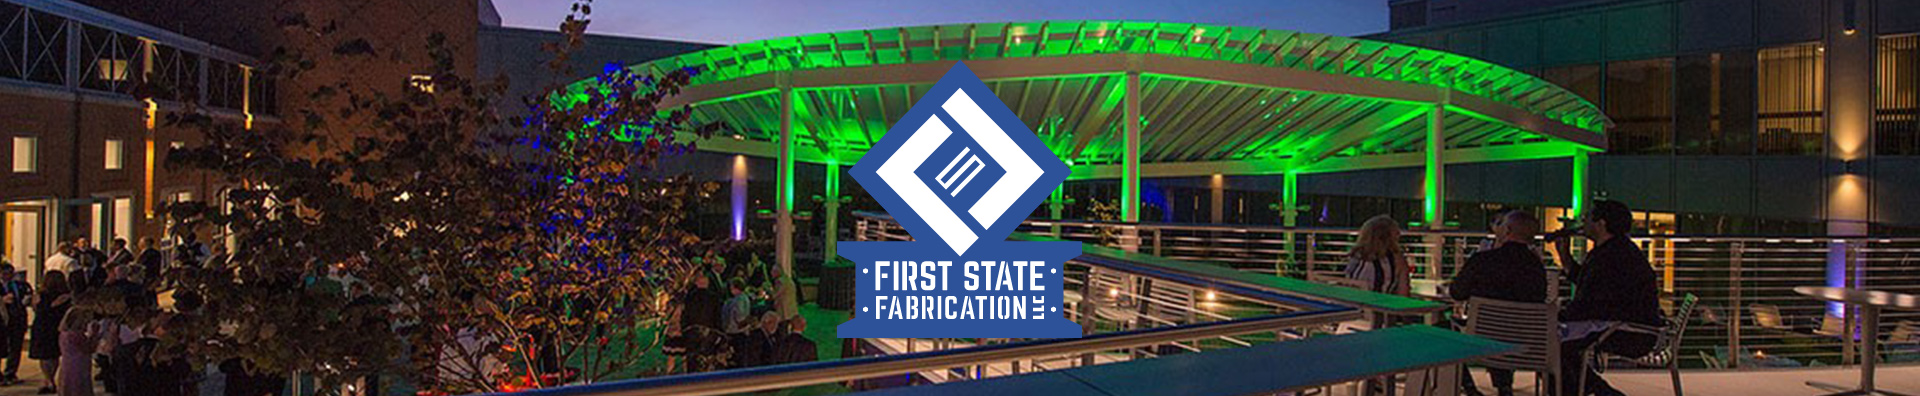 First State Fabrication